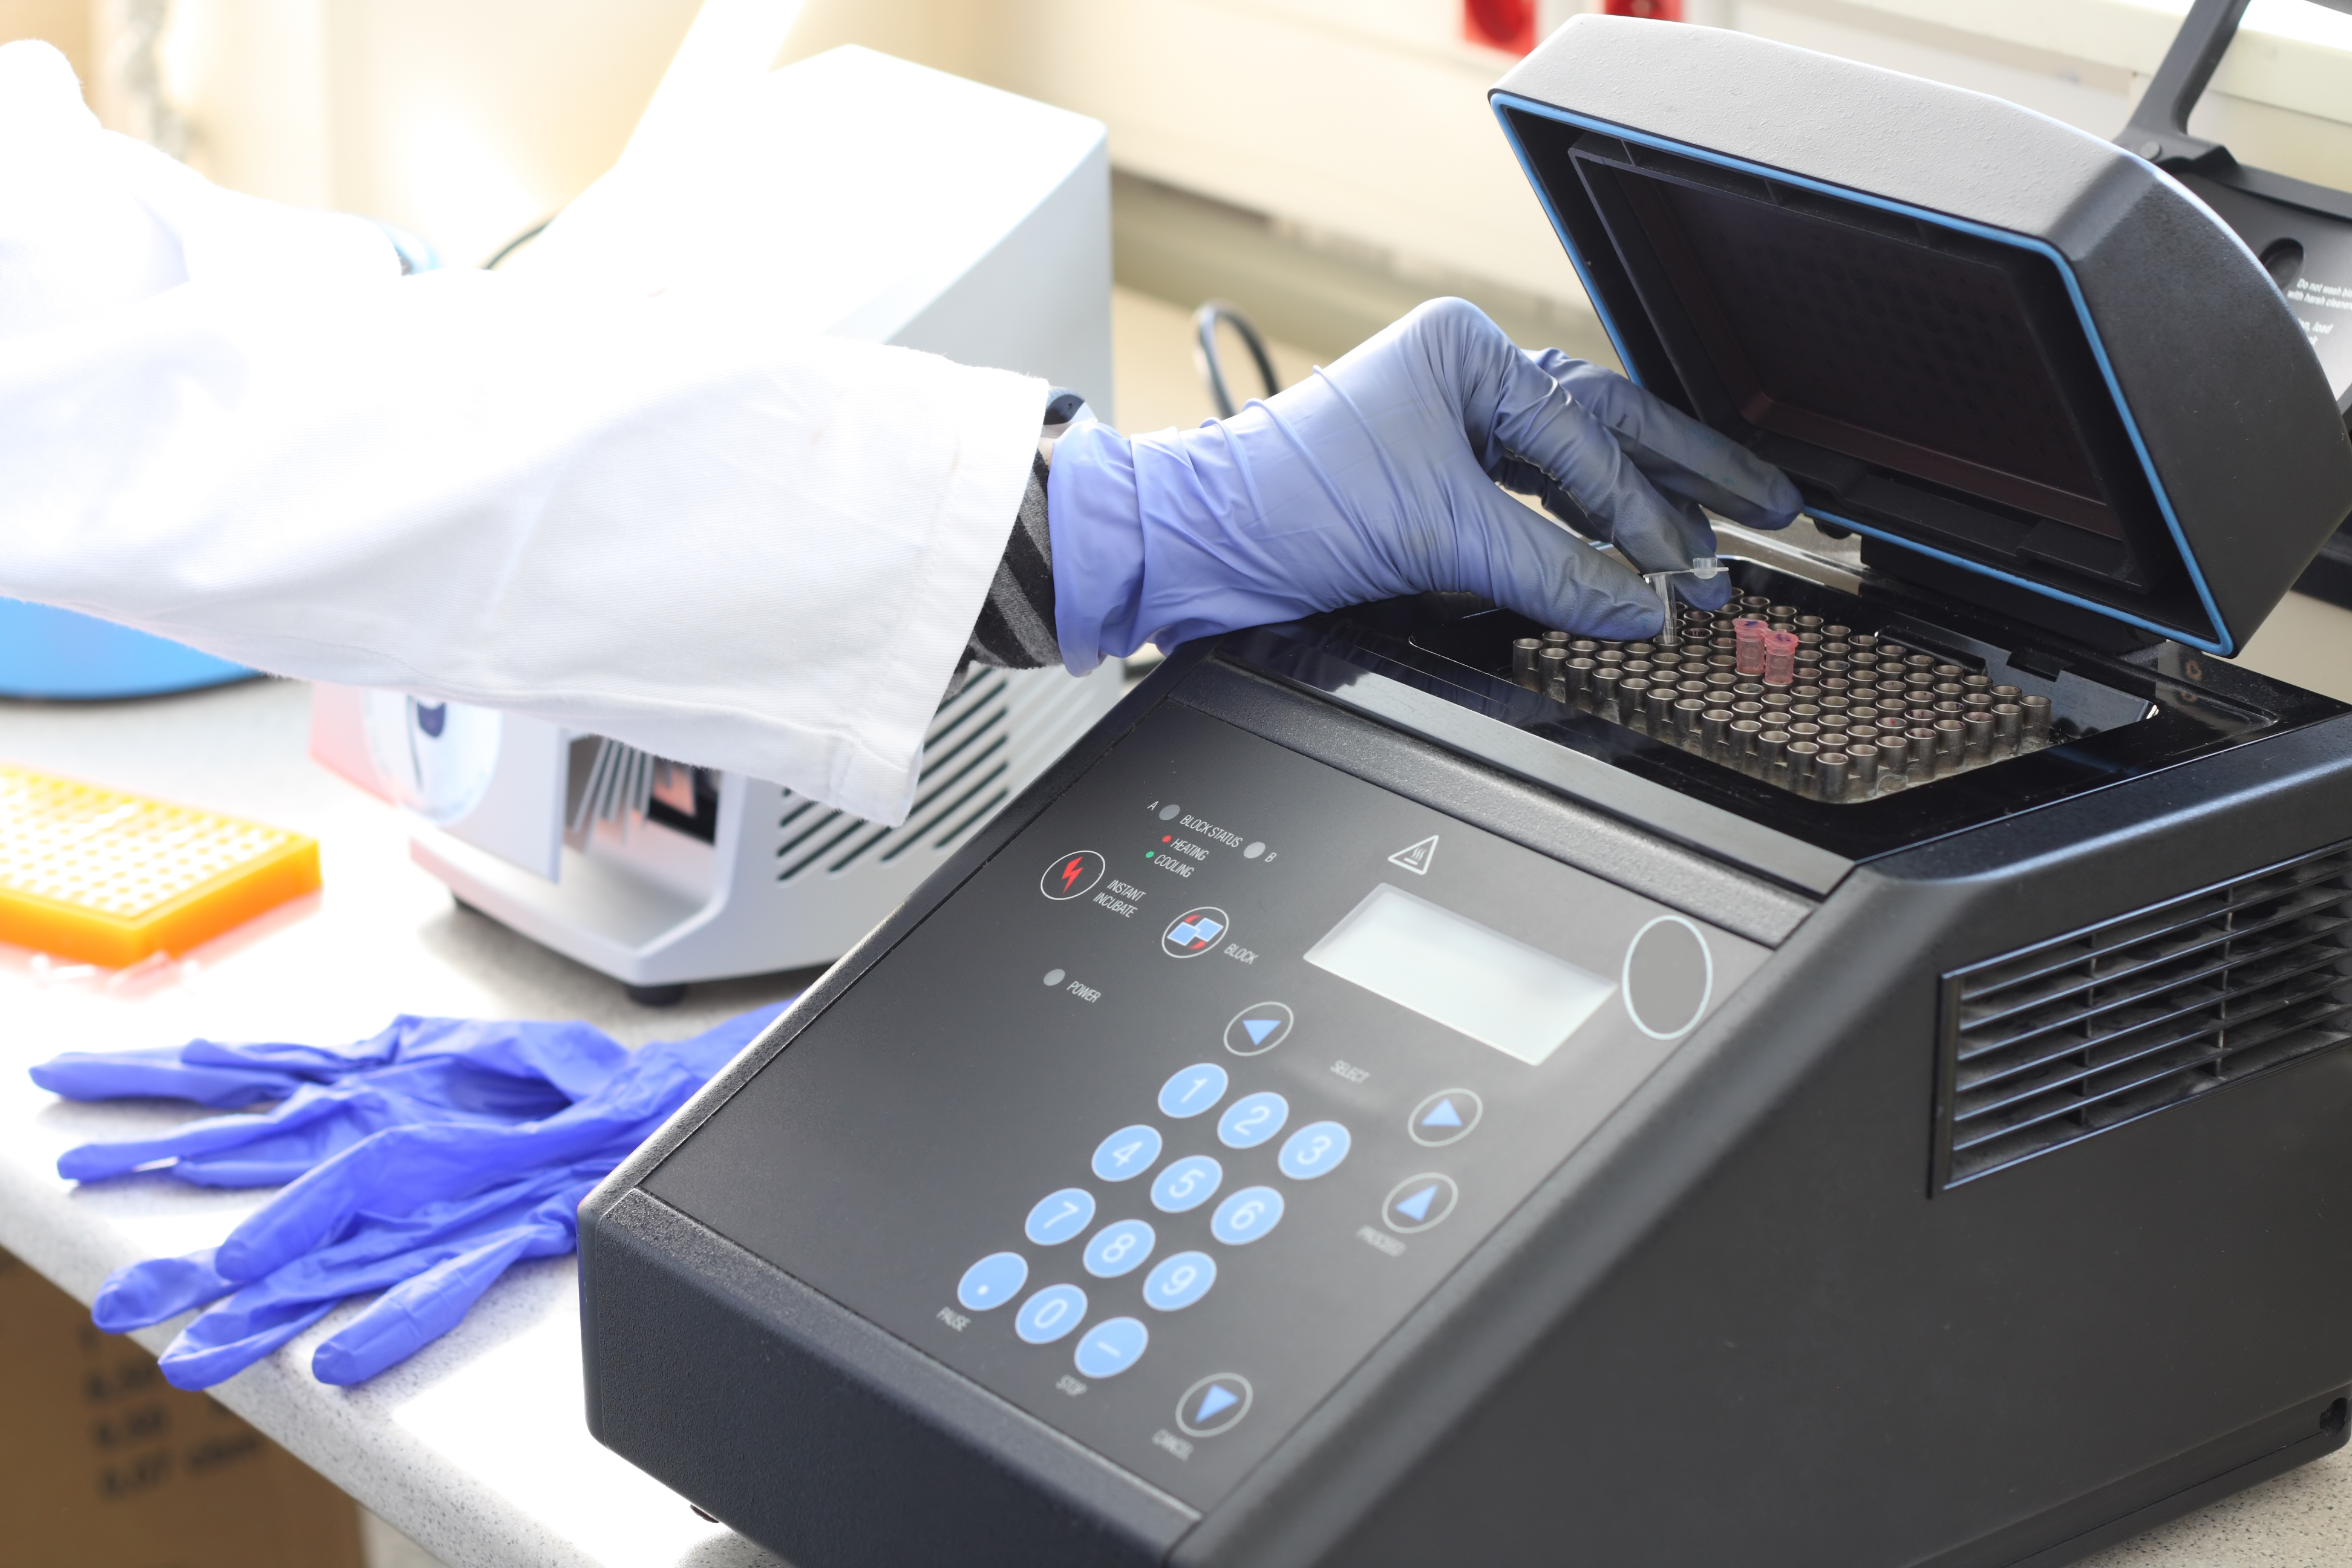 A forensic biologist analyzes evidence in the lab